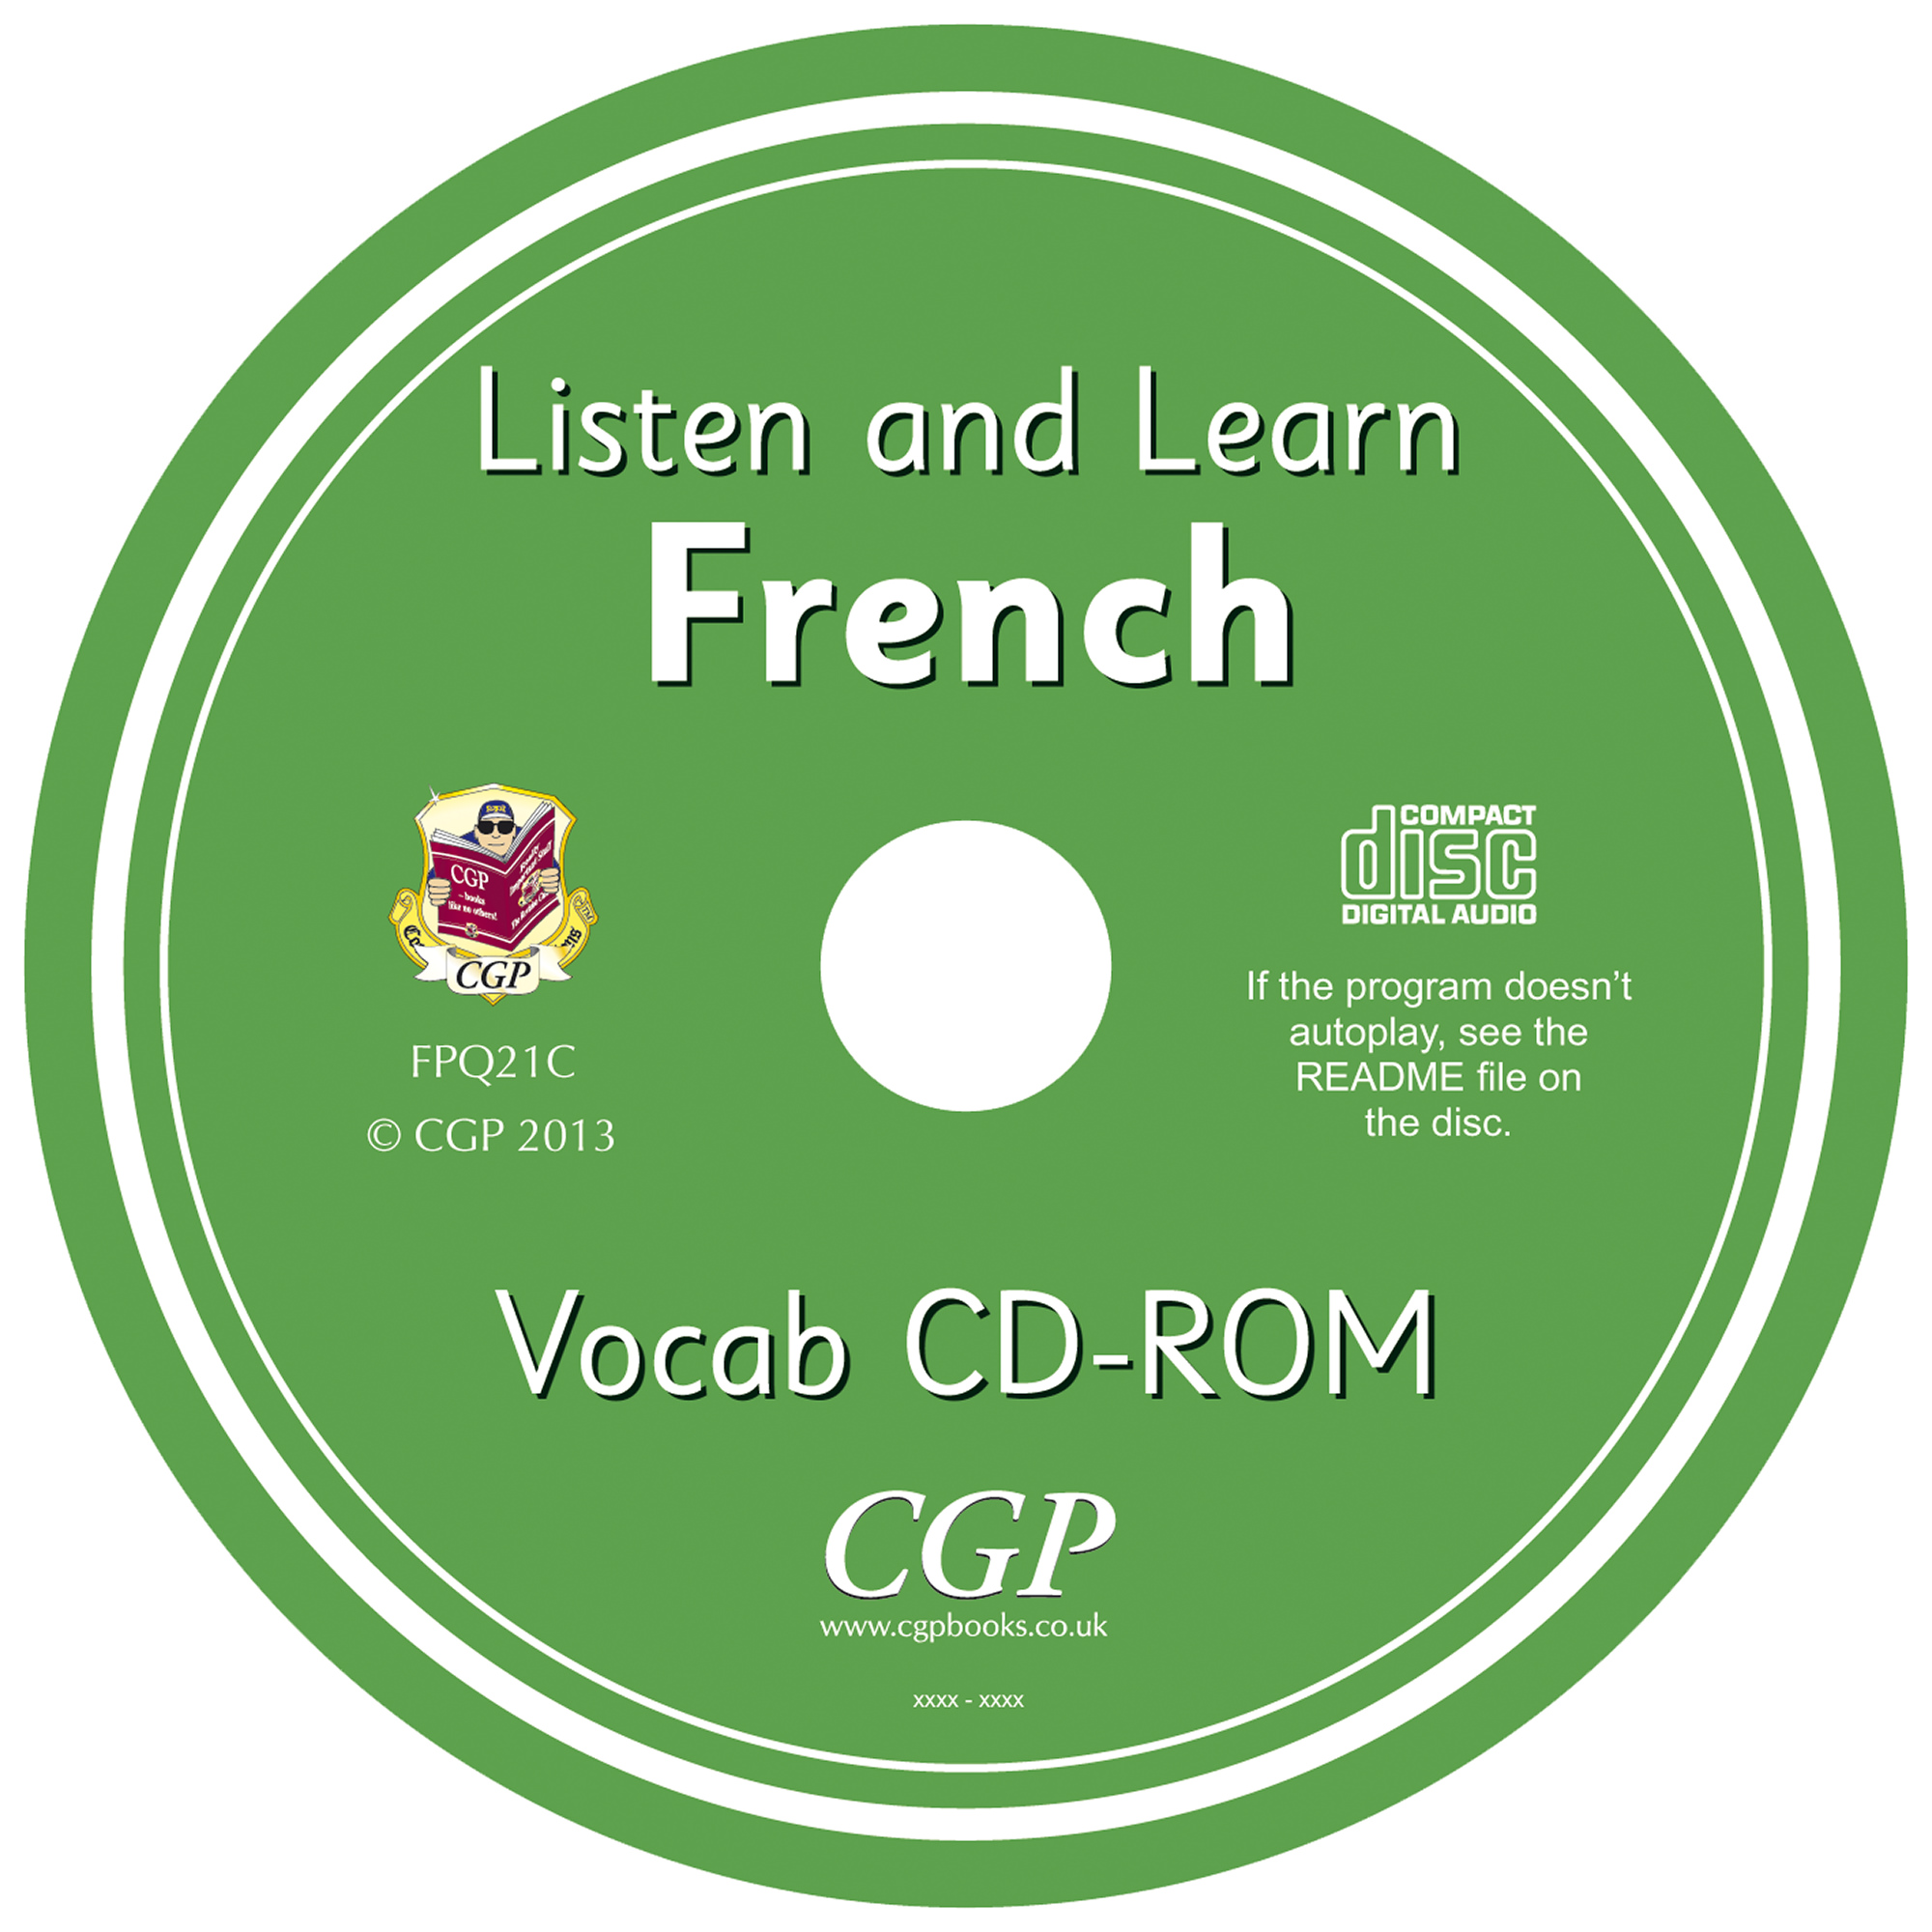 FPQ21C - UNMADE CD Practise & Learn French CD